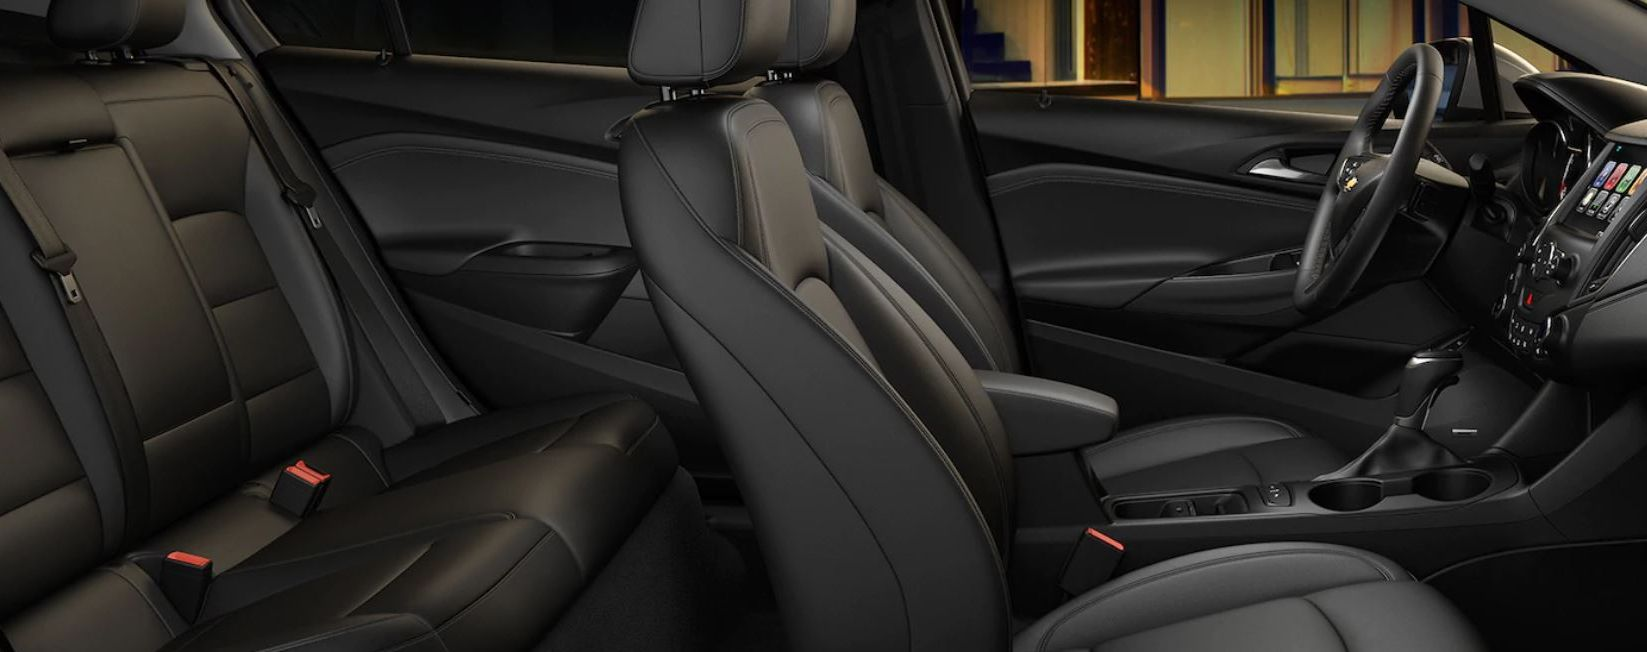 Seating in the Cruze